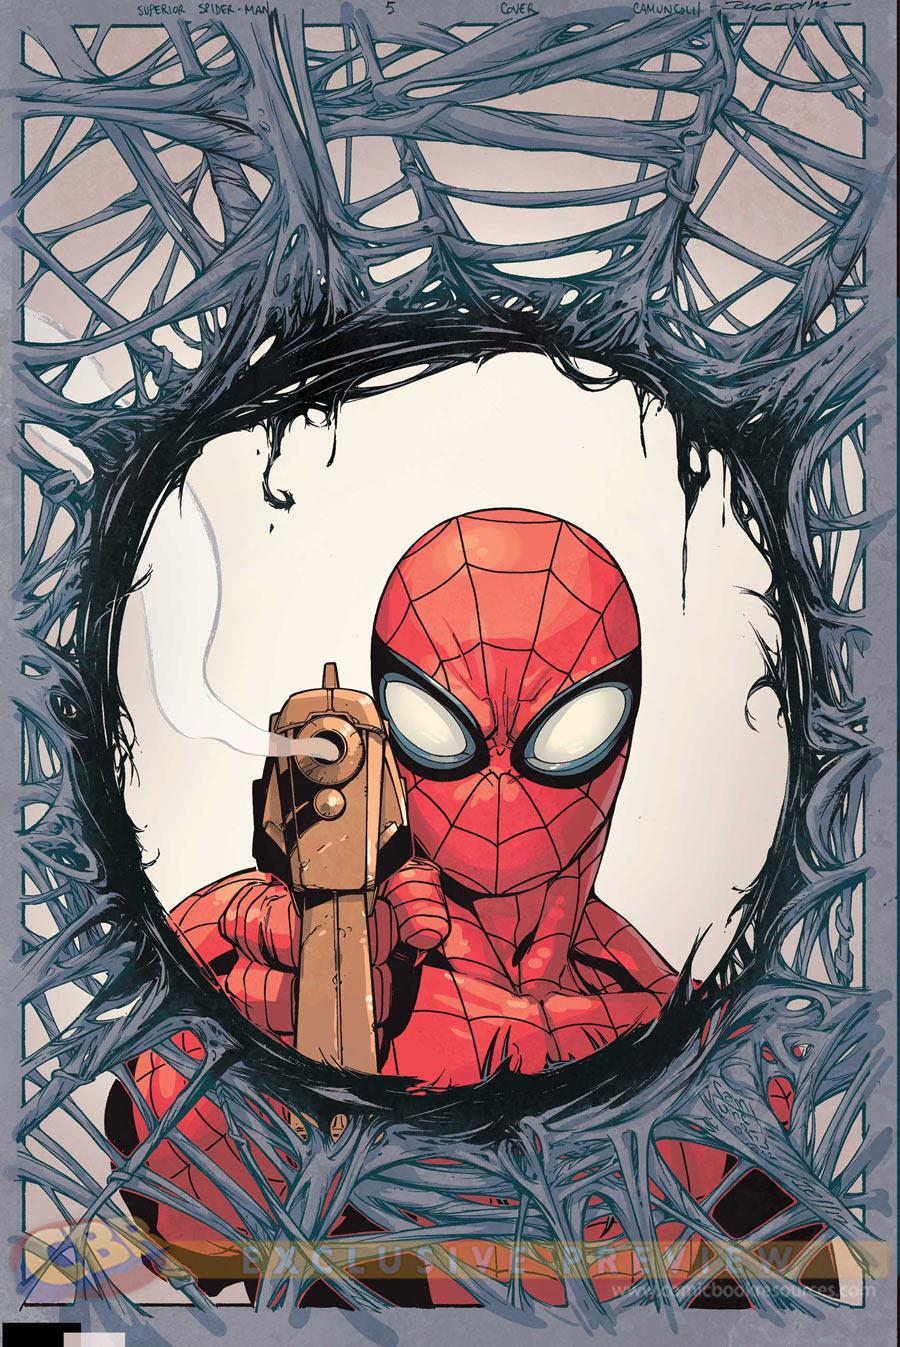 http://media.comicbook.com/wp-content/uploads/2012/12/superior-spidey-2.jpg